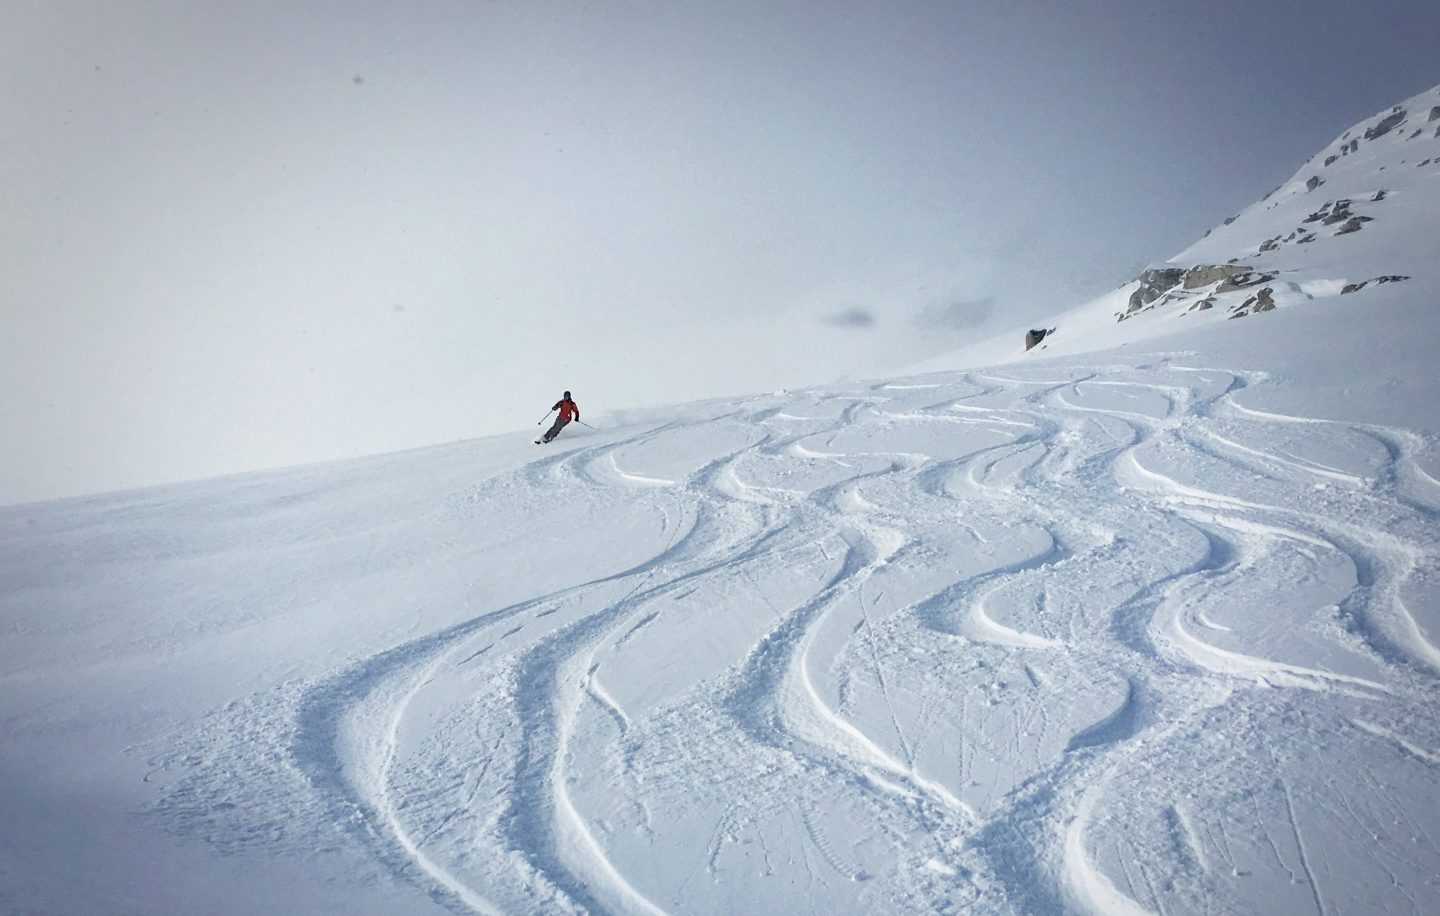 Heliskiing in Revelstoke – The greatest skiing season of my life